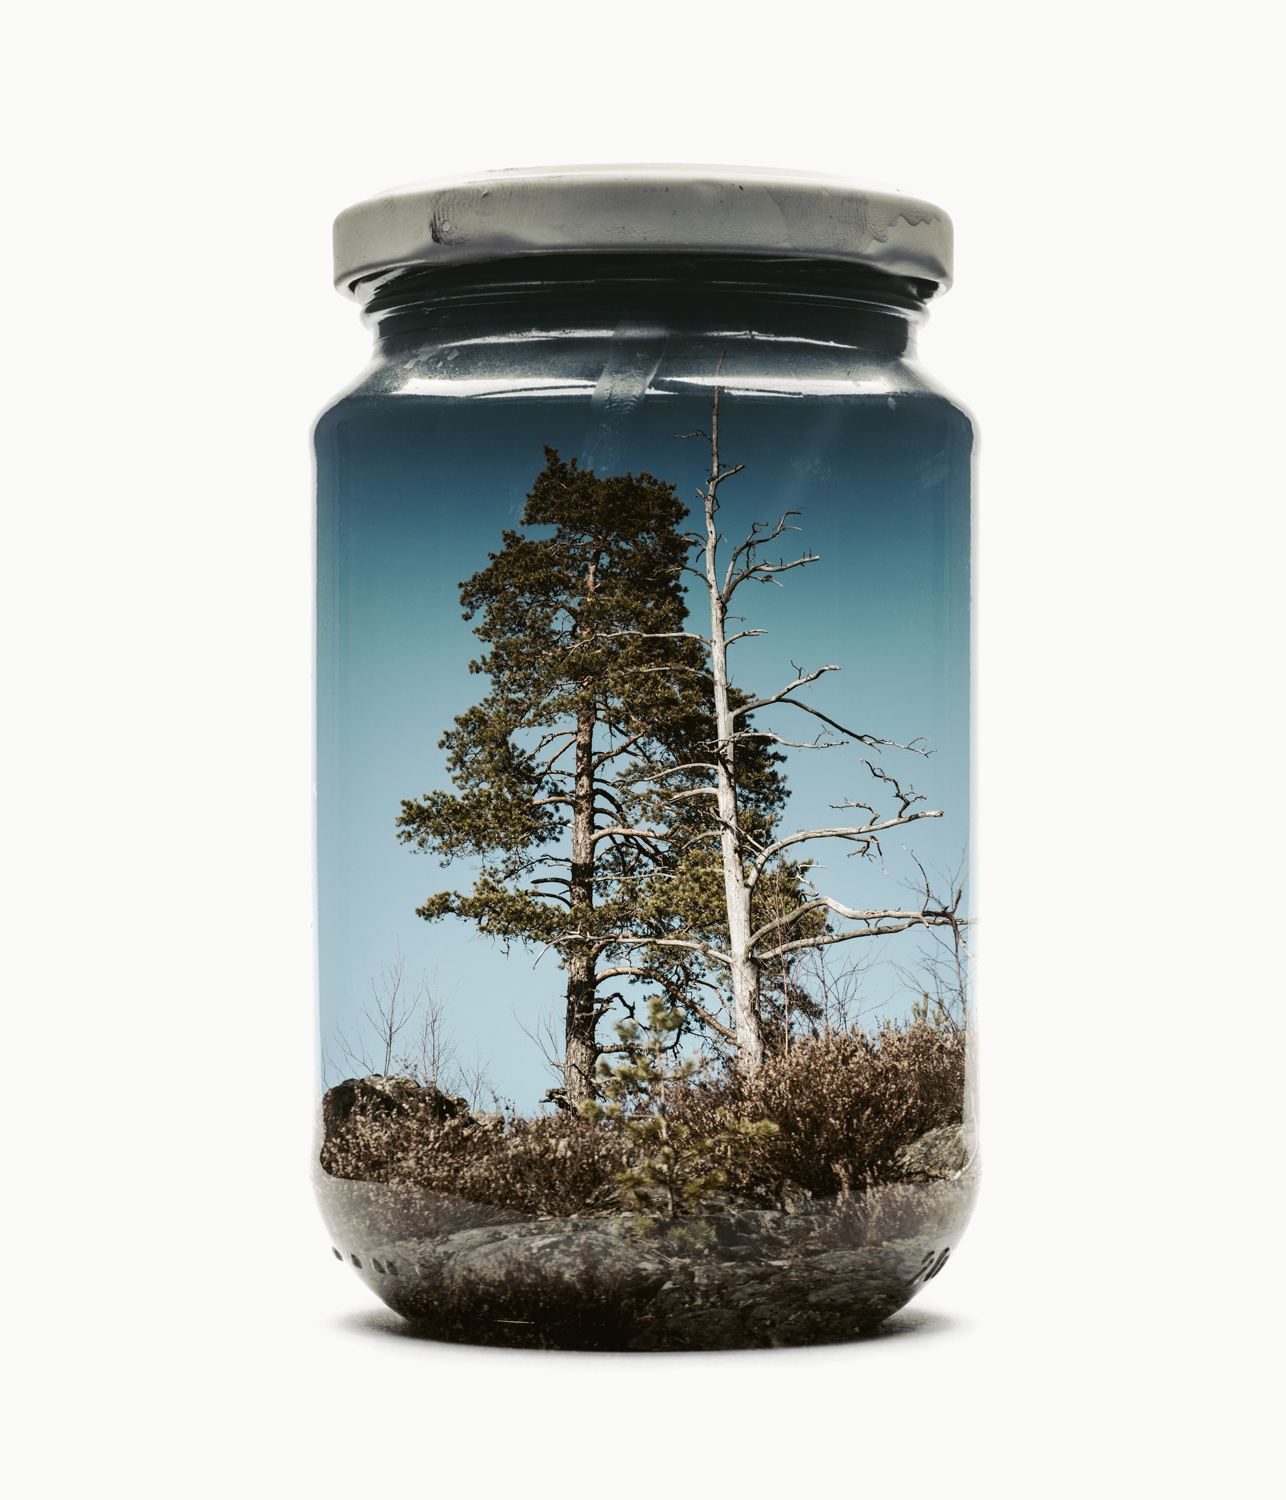 Alternative image for Jarred Couple Of Pines (Medium)